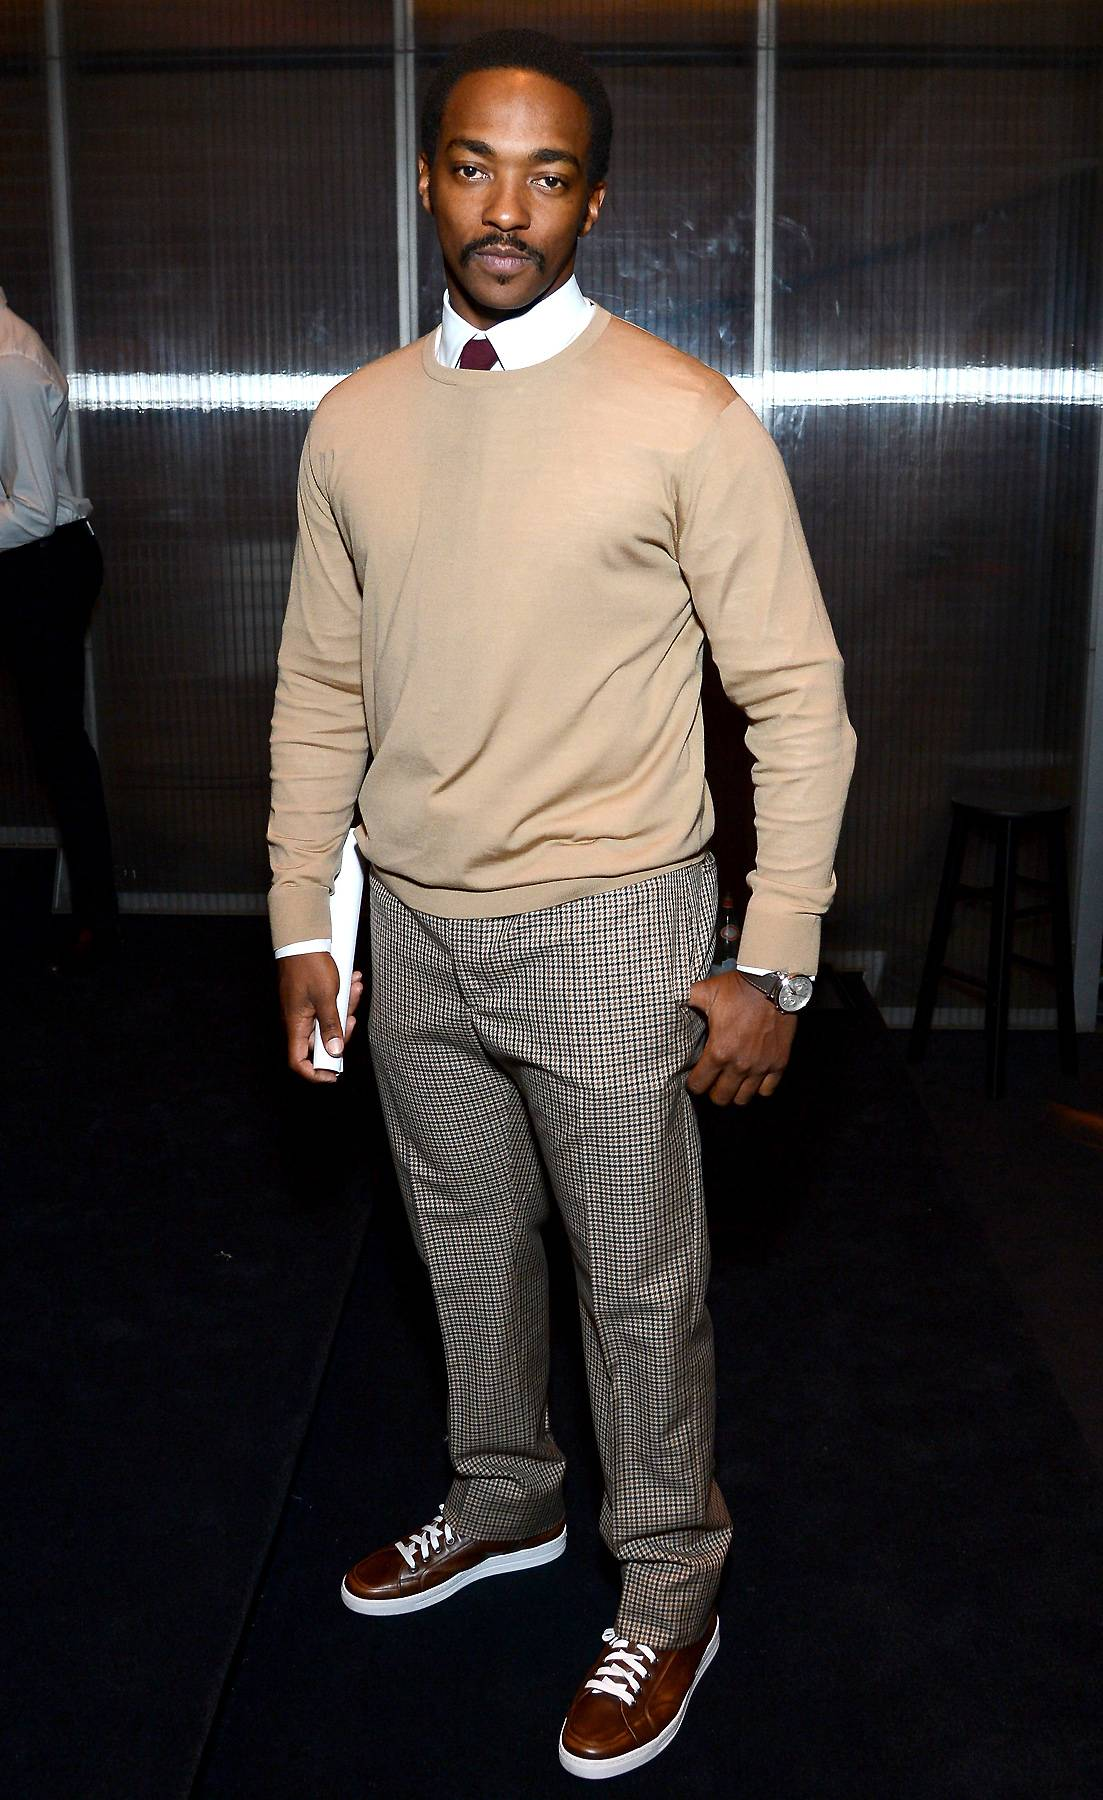 Anthony Mackie - February 28, 2014 - This man!Anthony Mackiedoesn't stop leading the acting pack, so he came to talk about his new role inRepentance.Watch a clip now!(Photo: Larry Busacca/Getty Images for Prada)